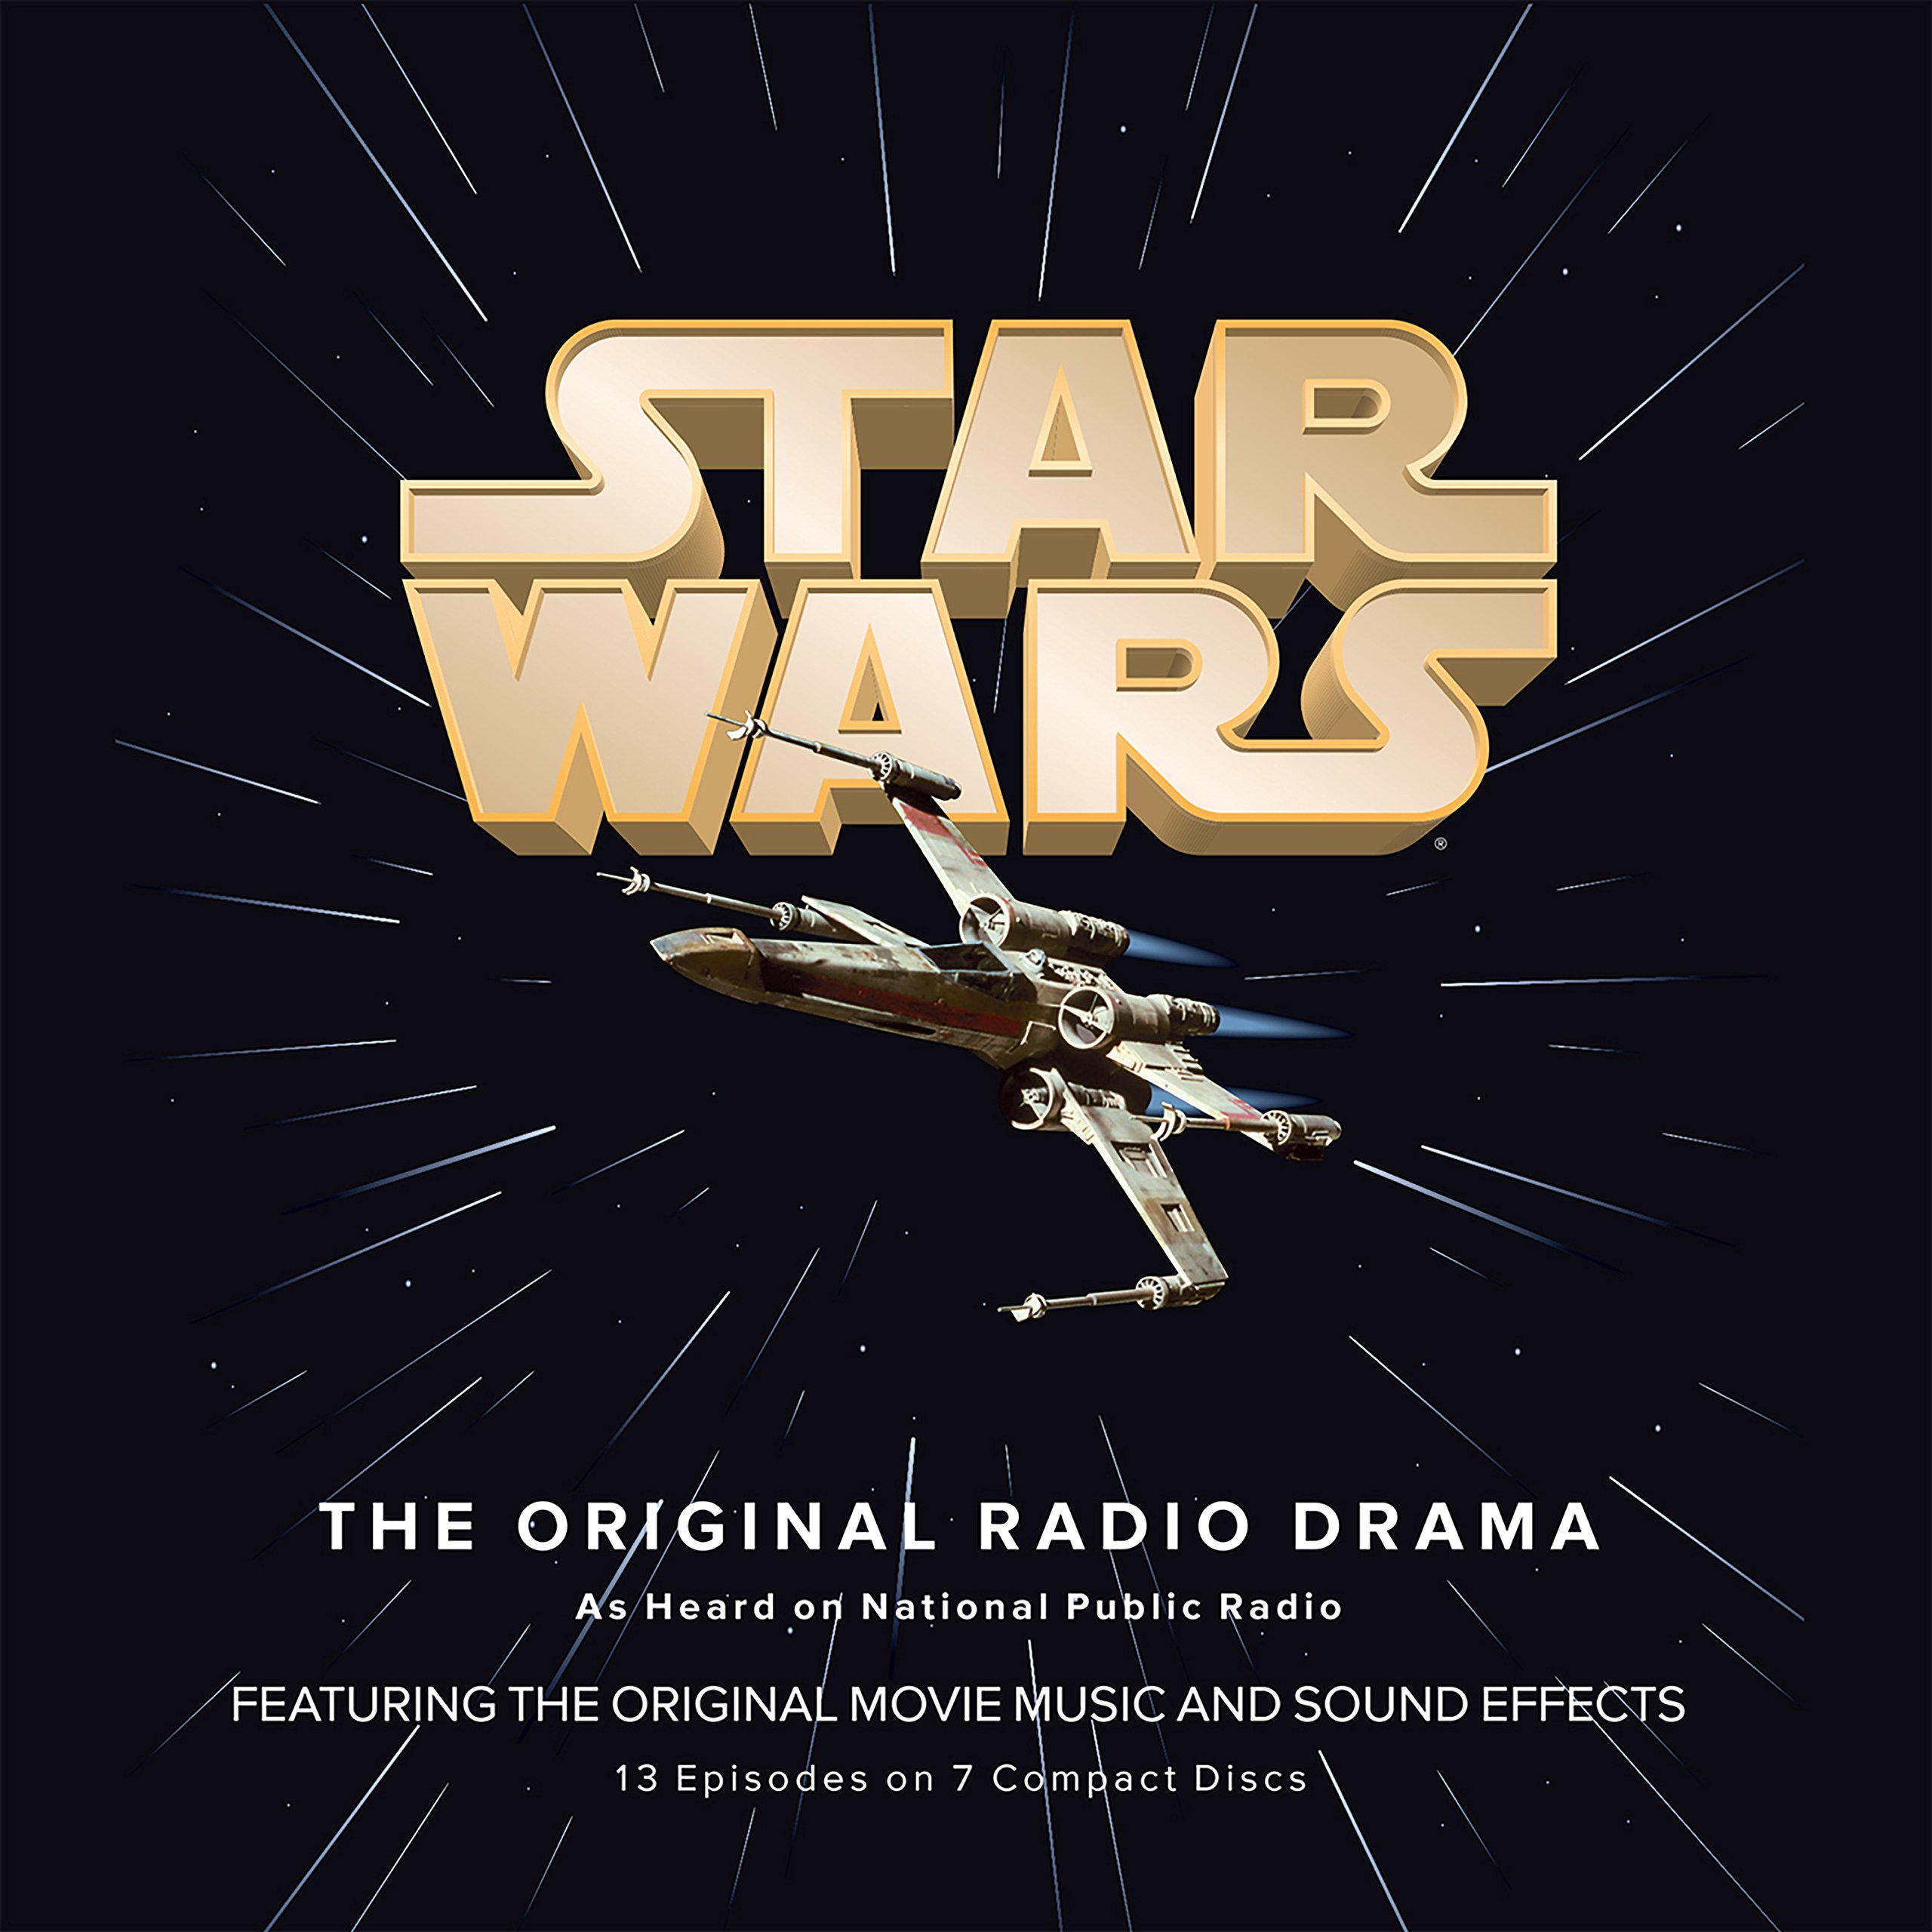 Star Wars: The Original Radio Drama by HighBridge Company